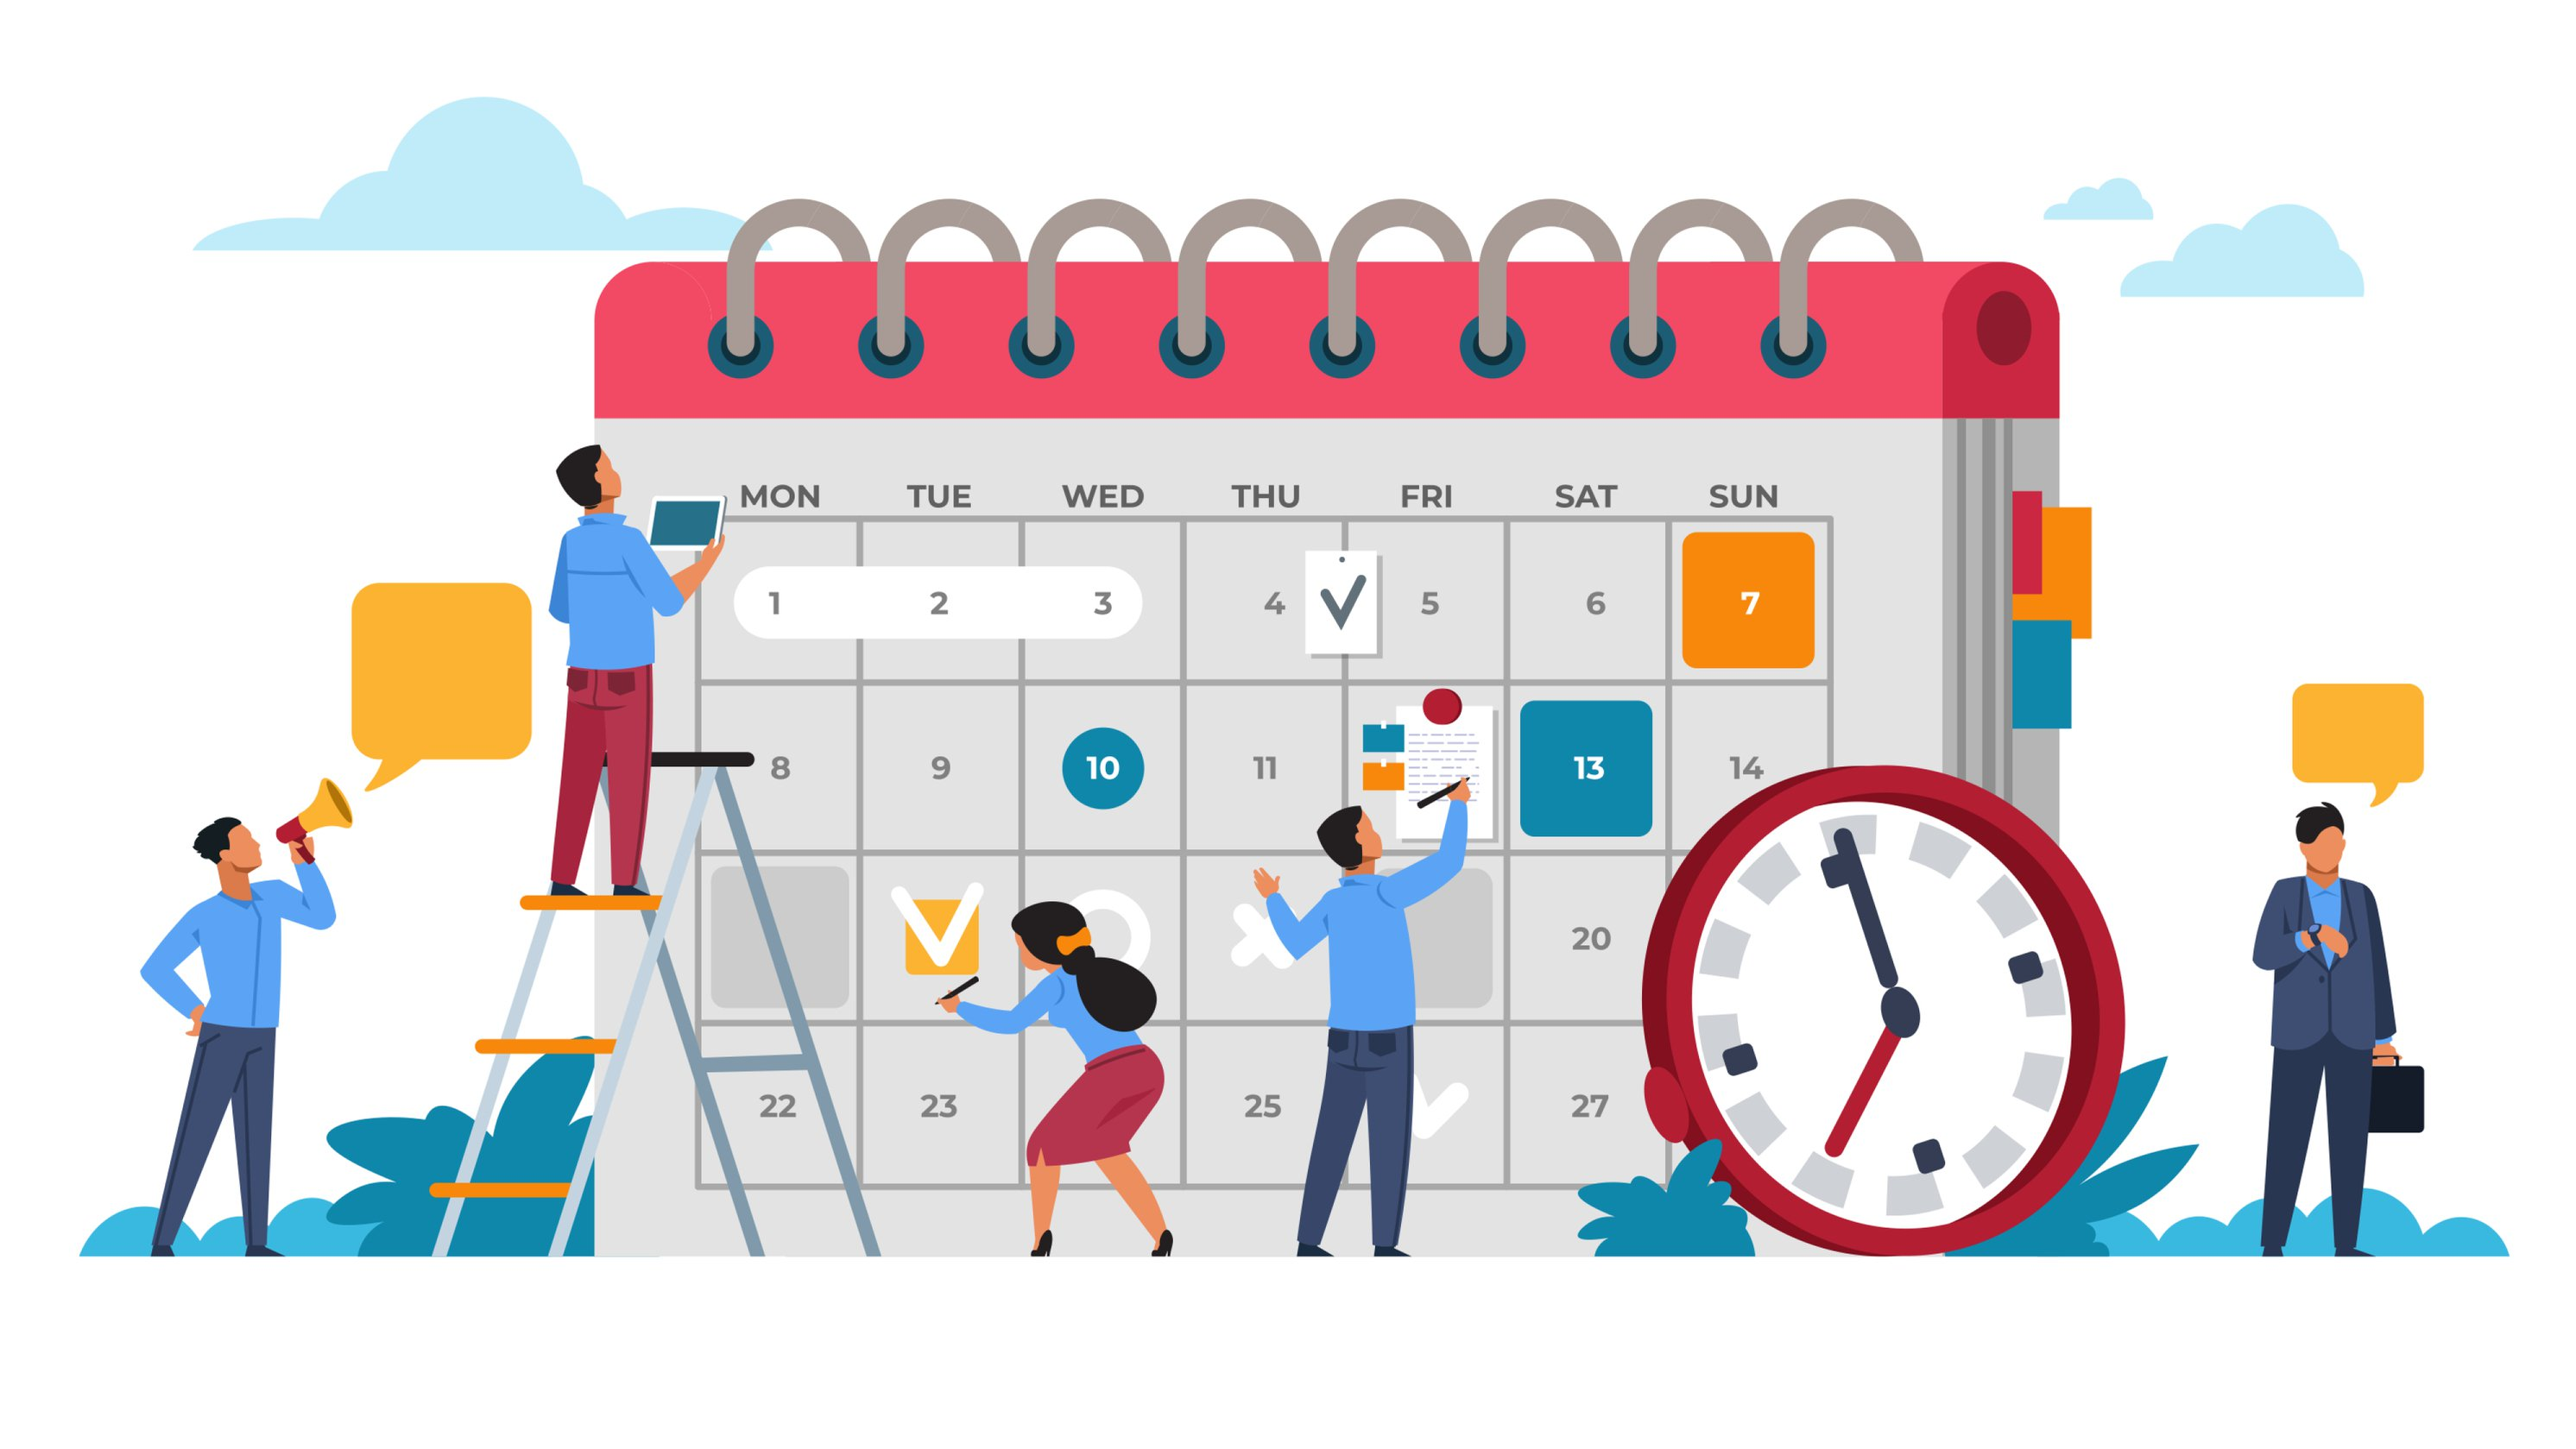 payroll, roster, employee scheduling software, time tracking